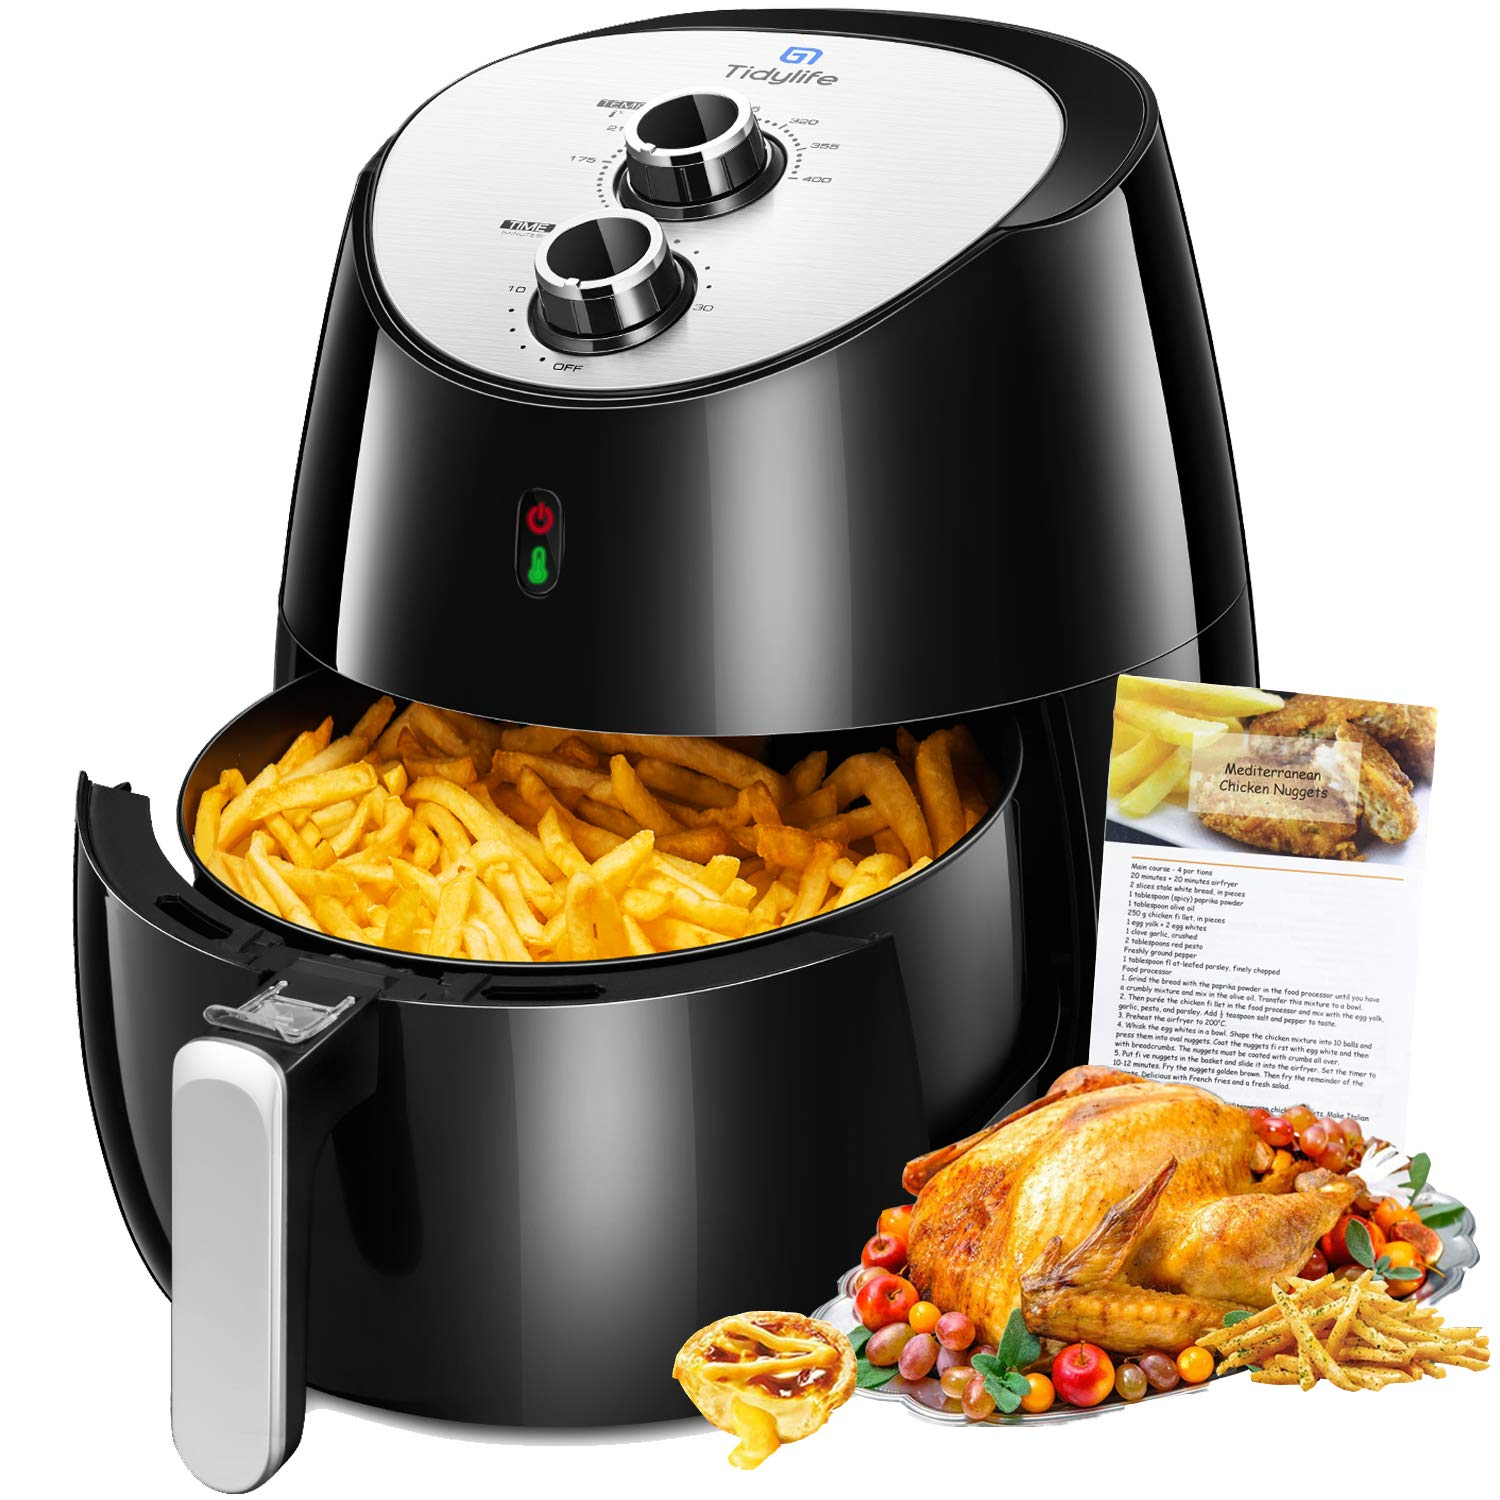 Air Fryer, Tidylife 5.8 QT Large Air Fryer, 1700W Oilless XL Oven Cooker, Smart Time and Temperature Control, 7 Cooking Preset, 175-400℉ Hot Air Fryer with Non-stick Basket, Auto Shut Off, 50+ Recipes